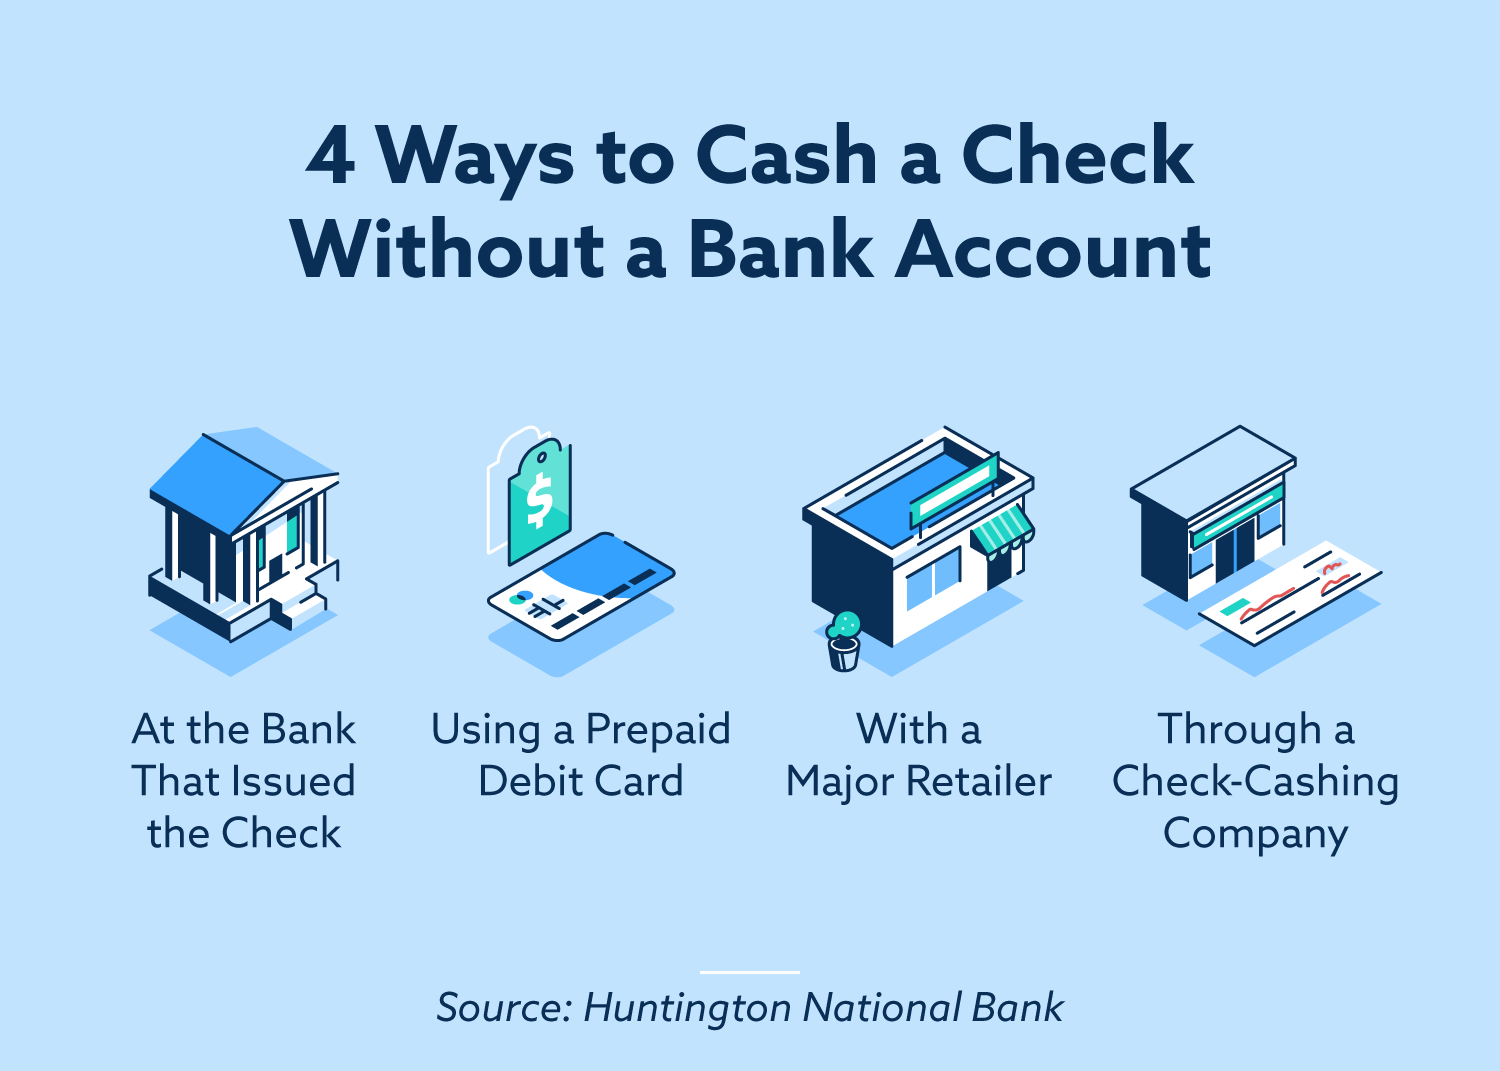 4 ways to cash a check without a bank account. At the bank that issued the check, using a prepaid debit card, with a major retailer, through a check-cashing company.